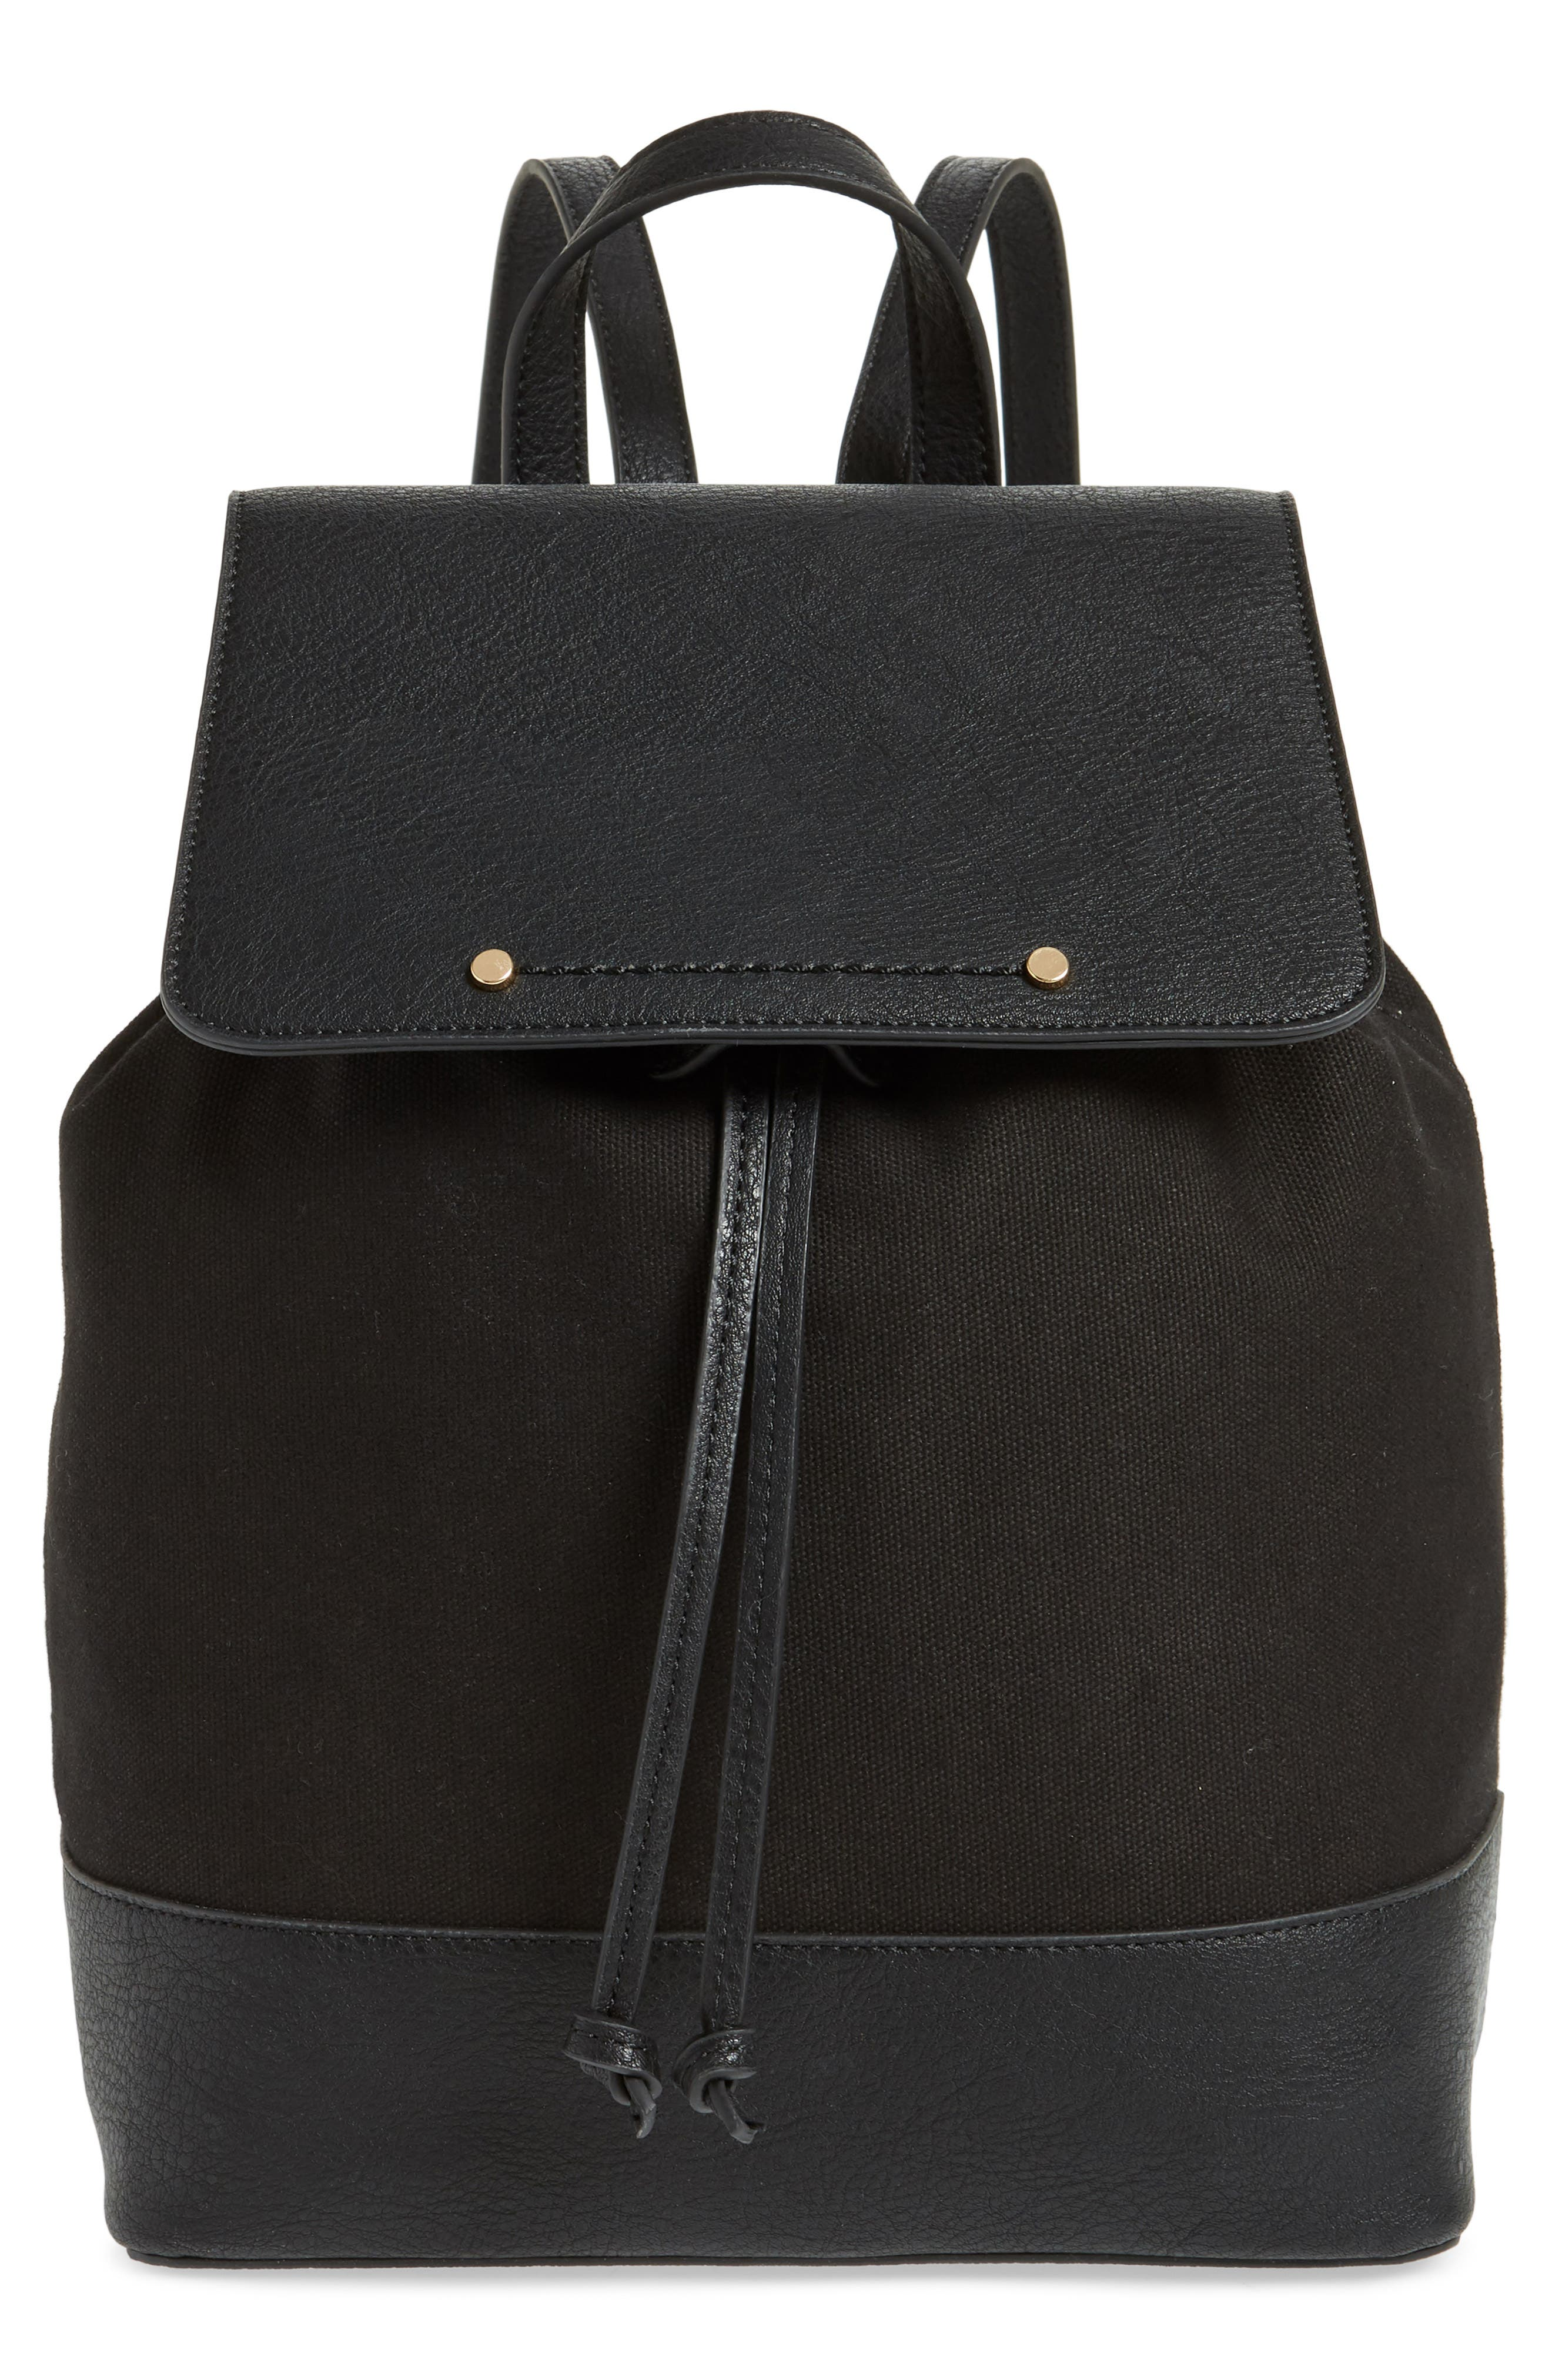 Canvas & Faux Leather Backpack,                         Main,                         color, Black